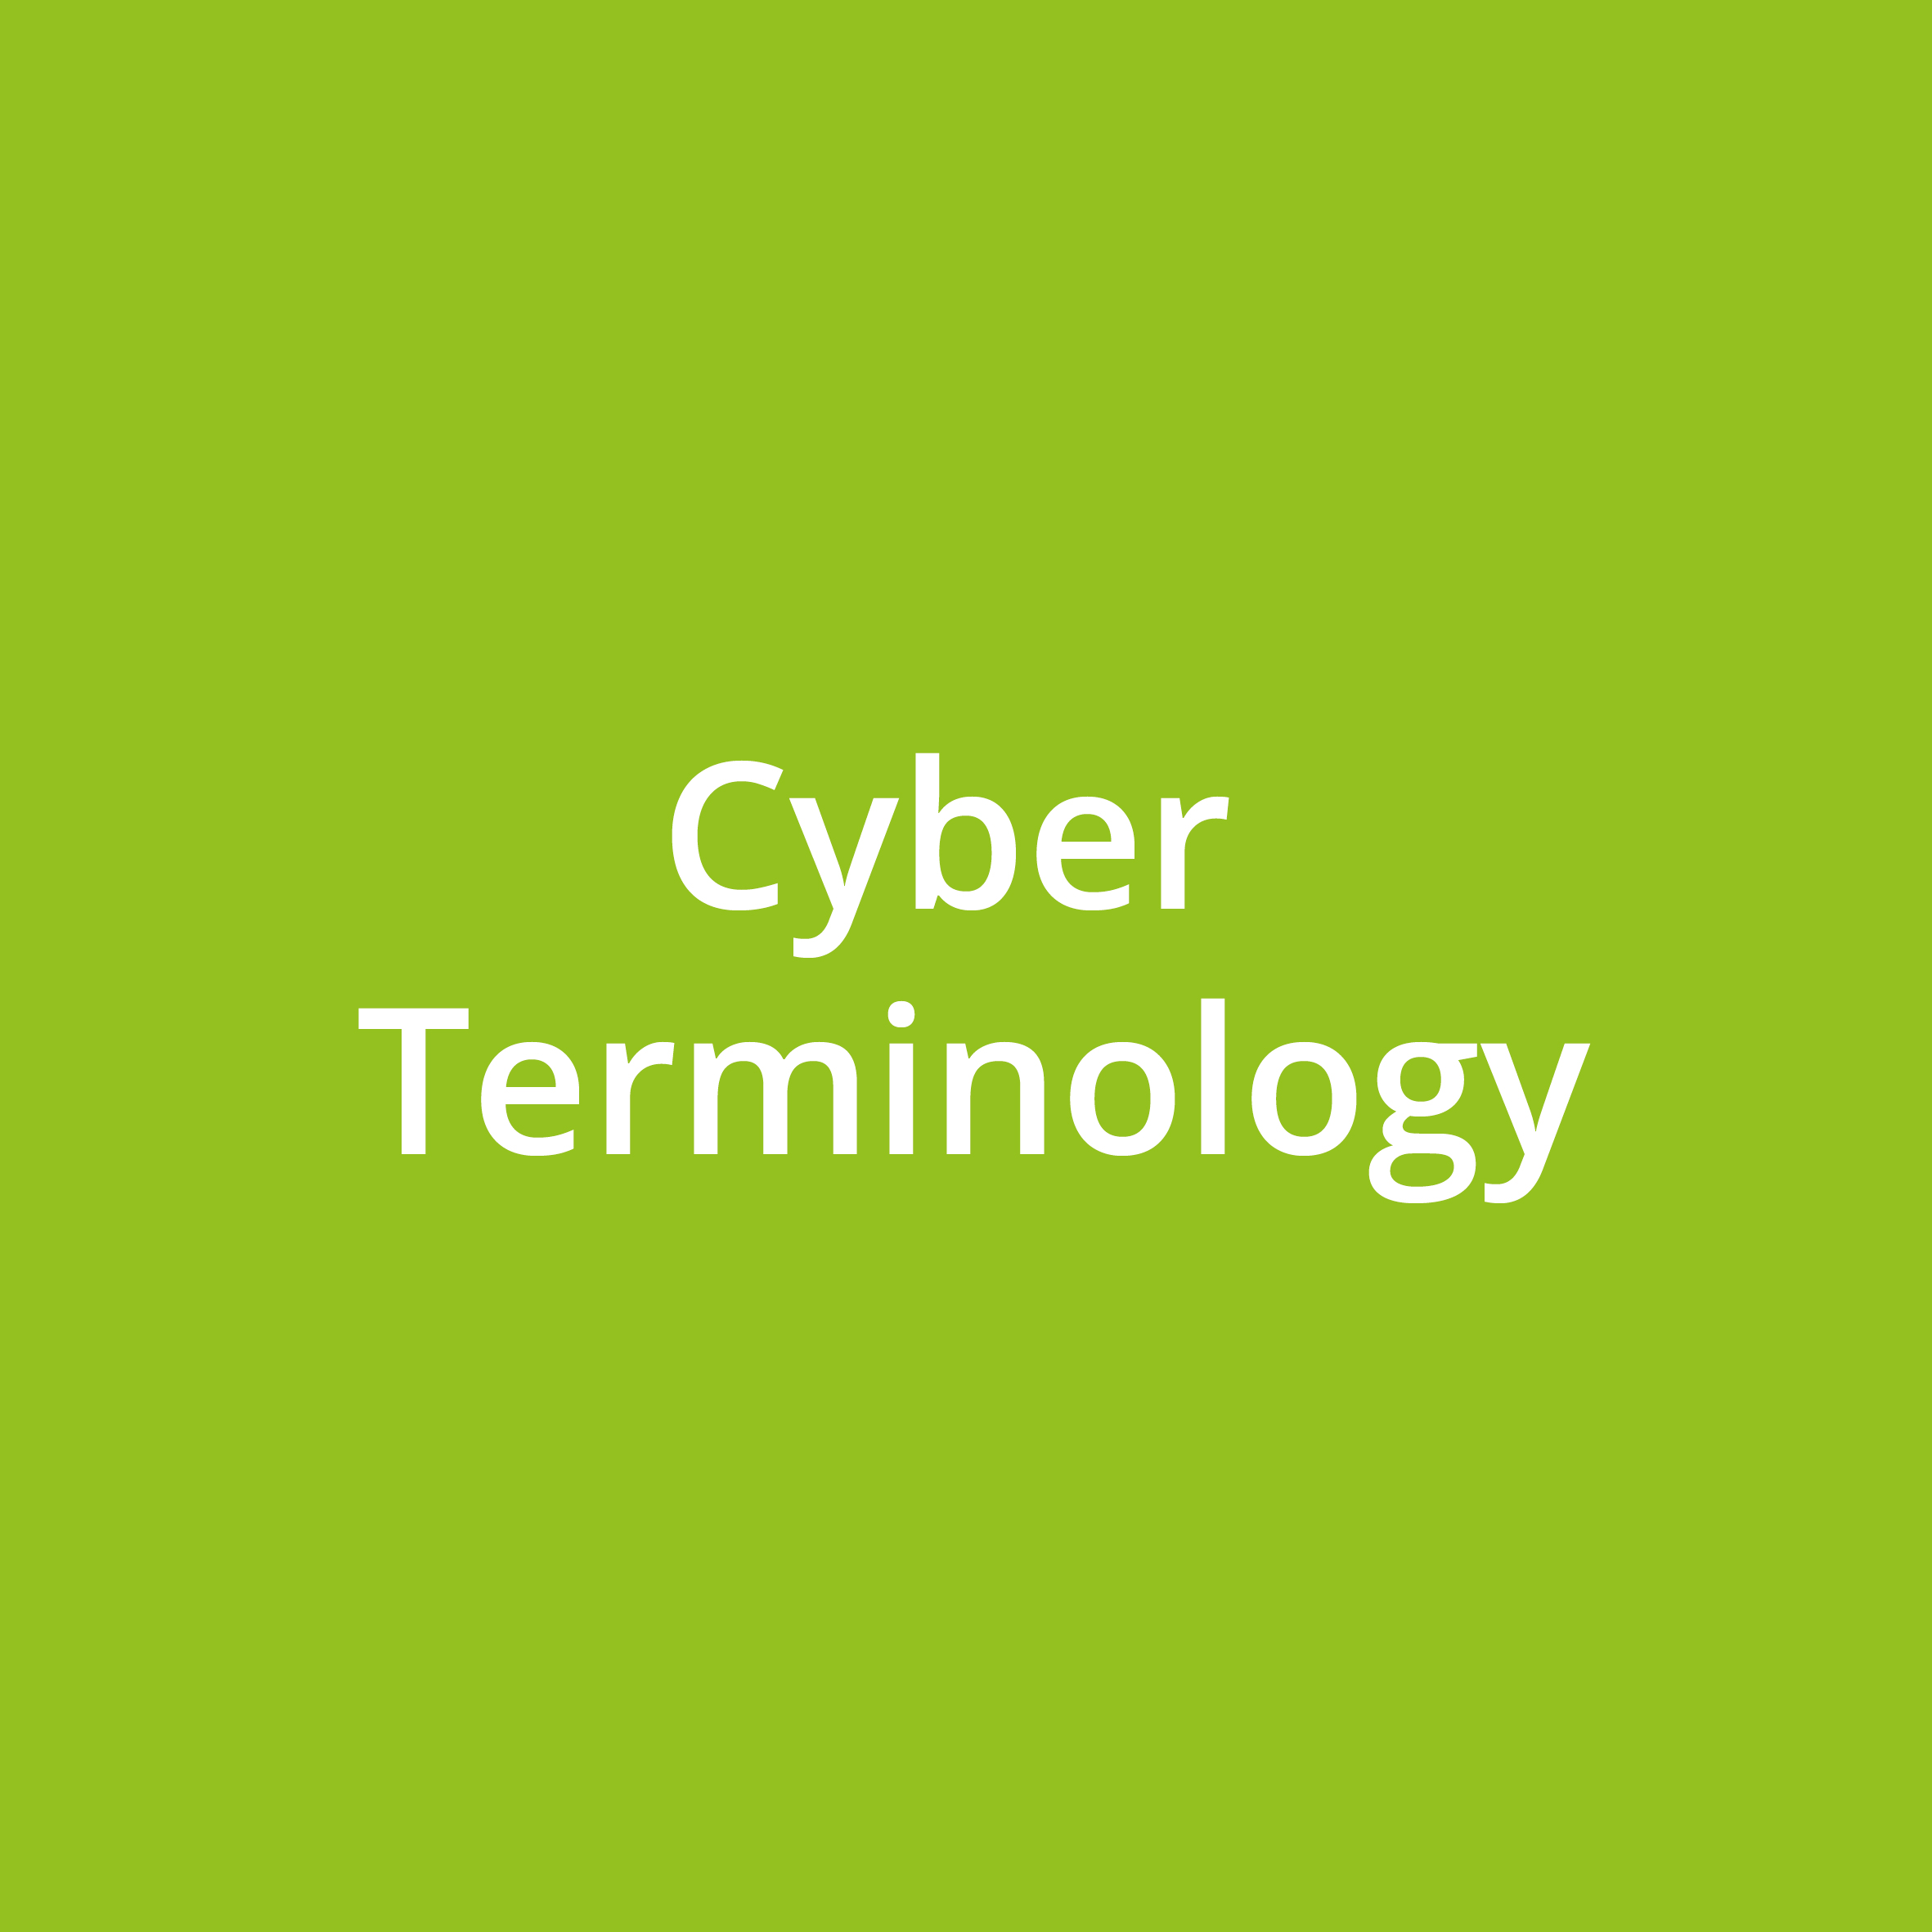 Cyber Terminology